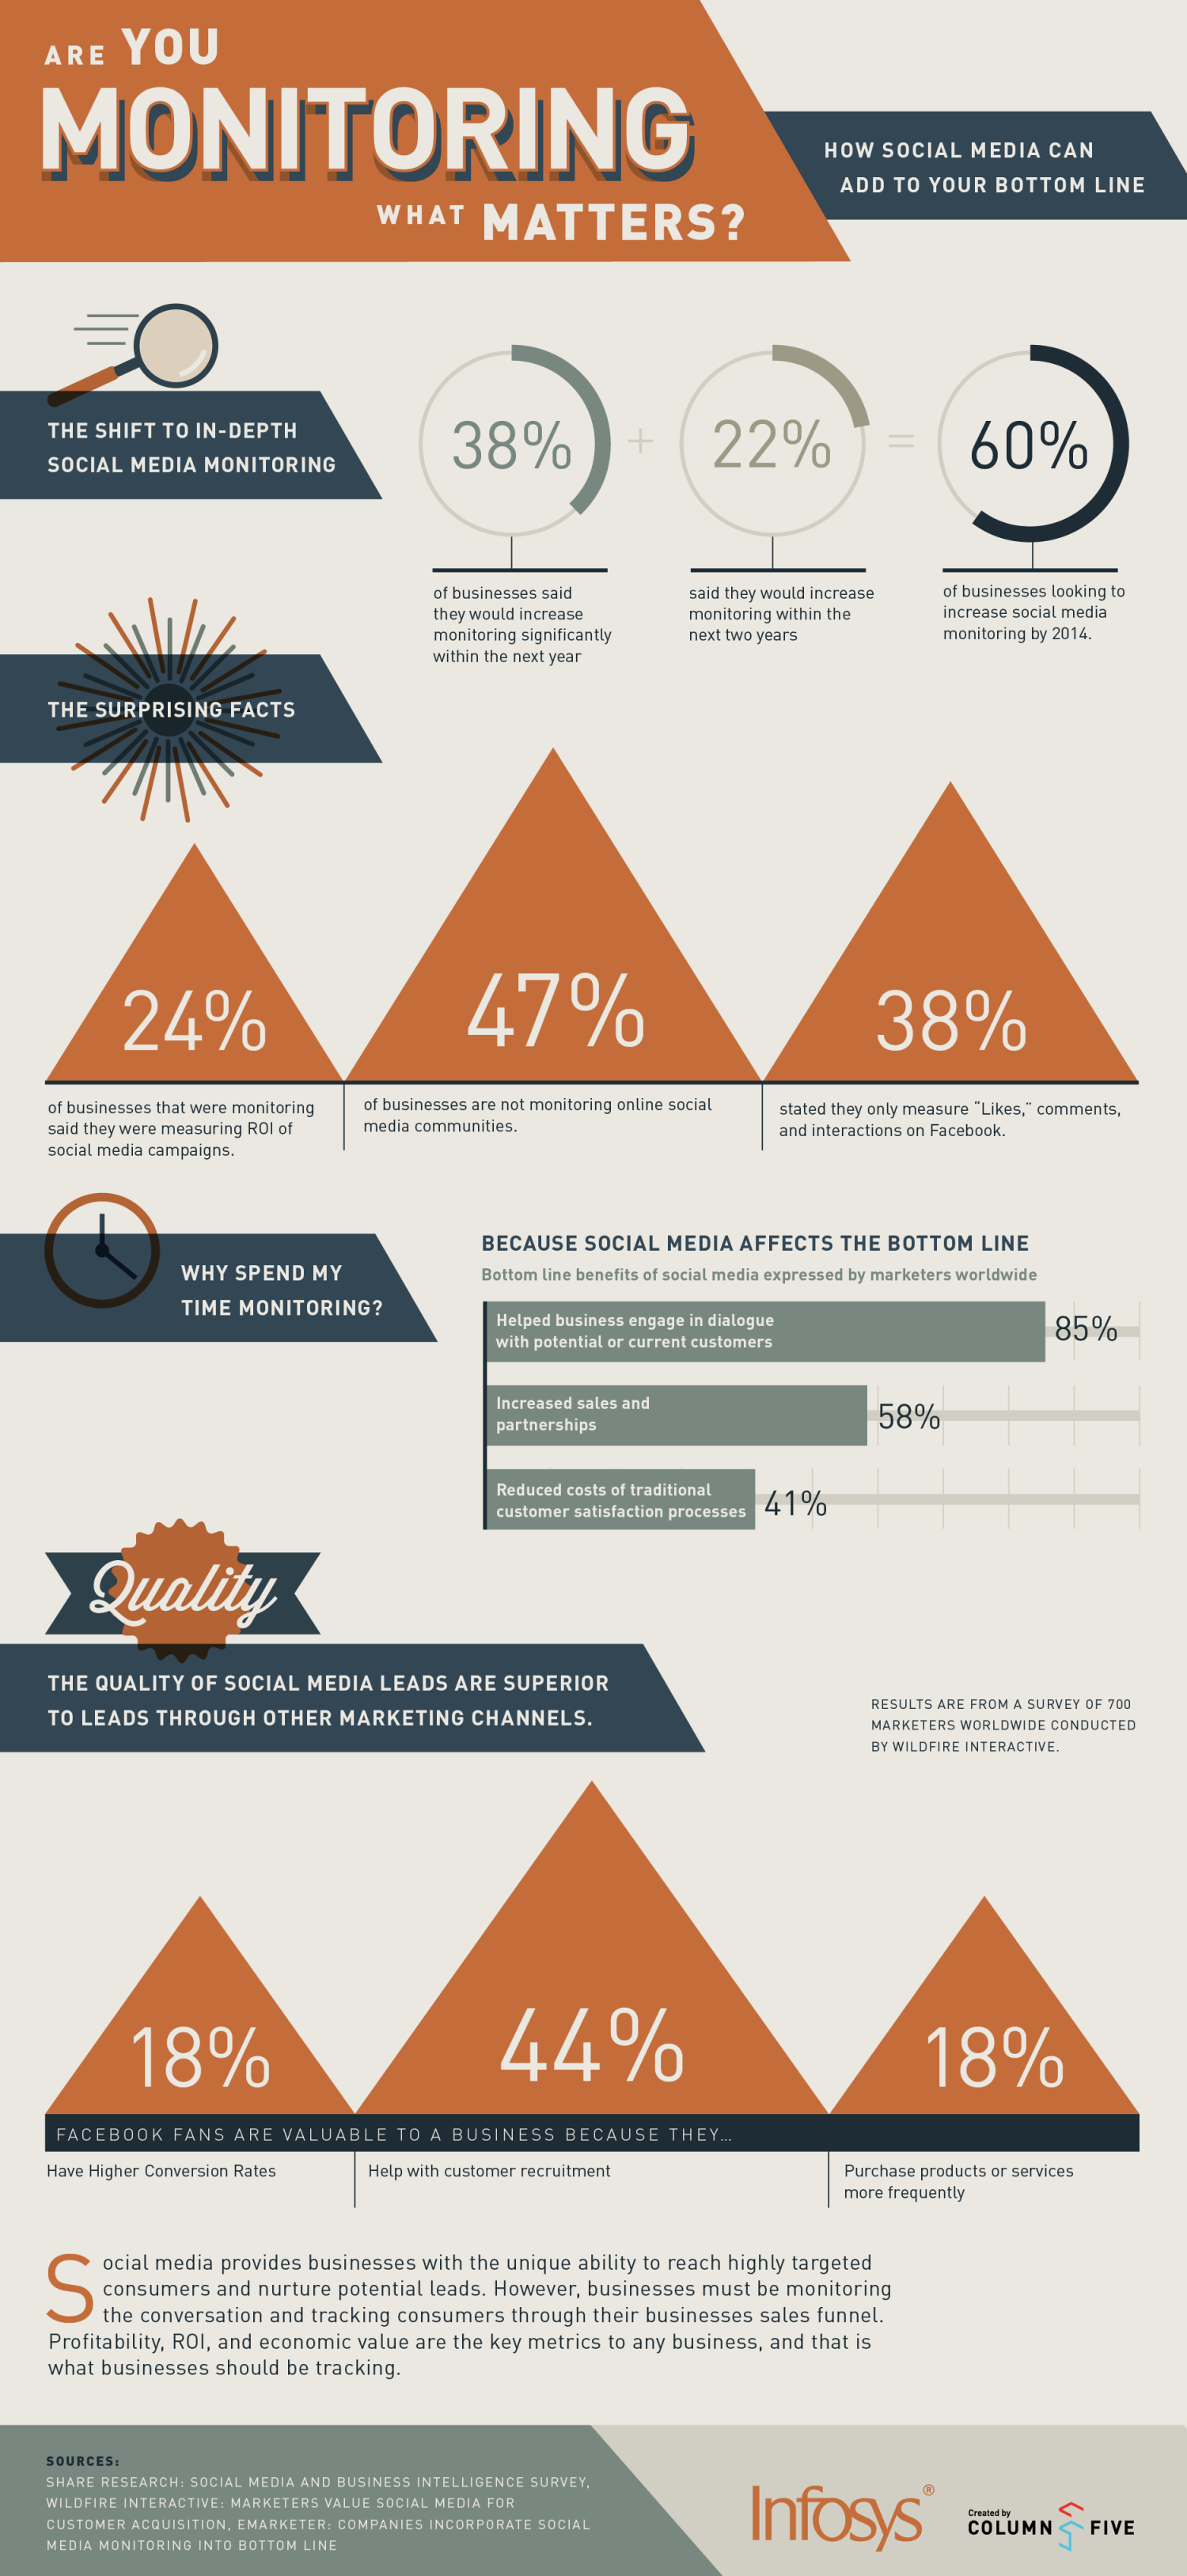 Are You Monitoring What Matters? Infographic